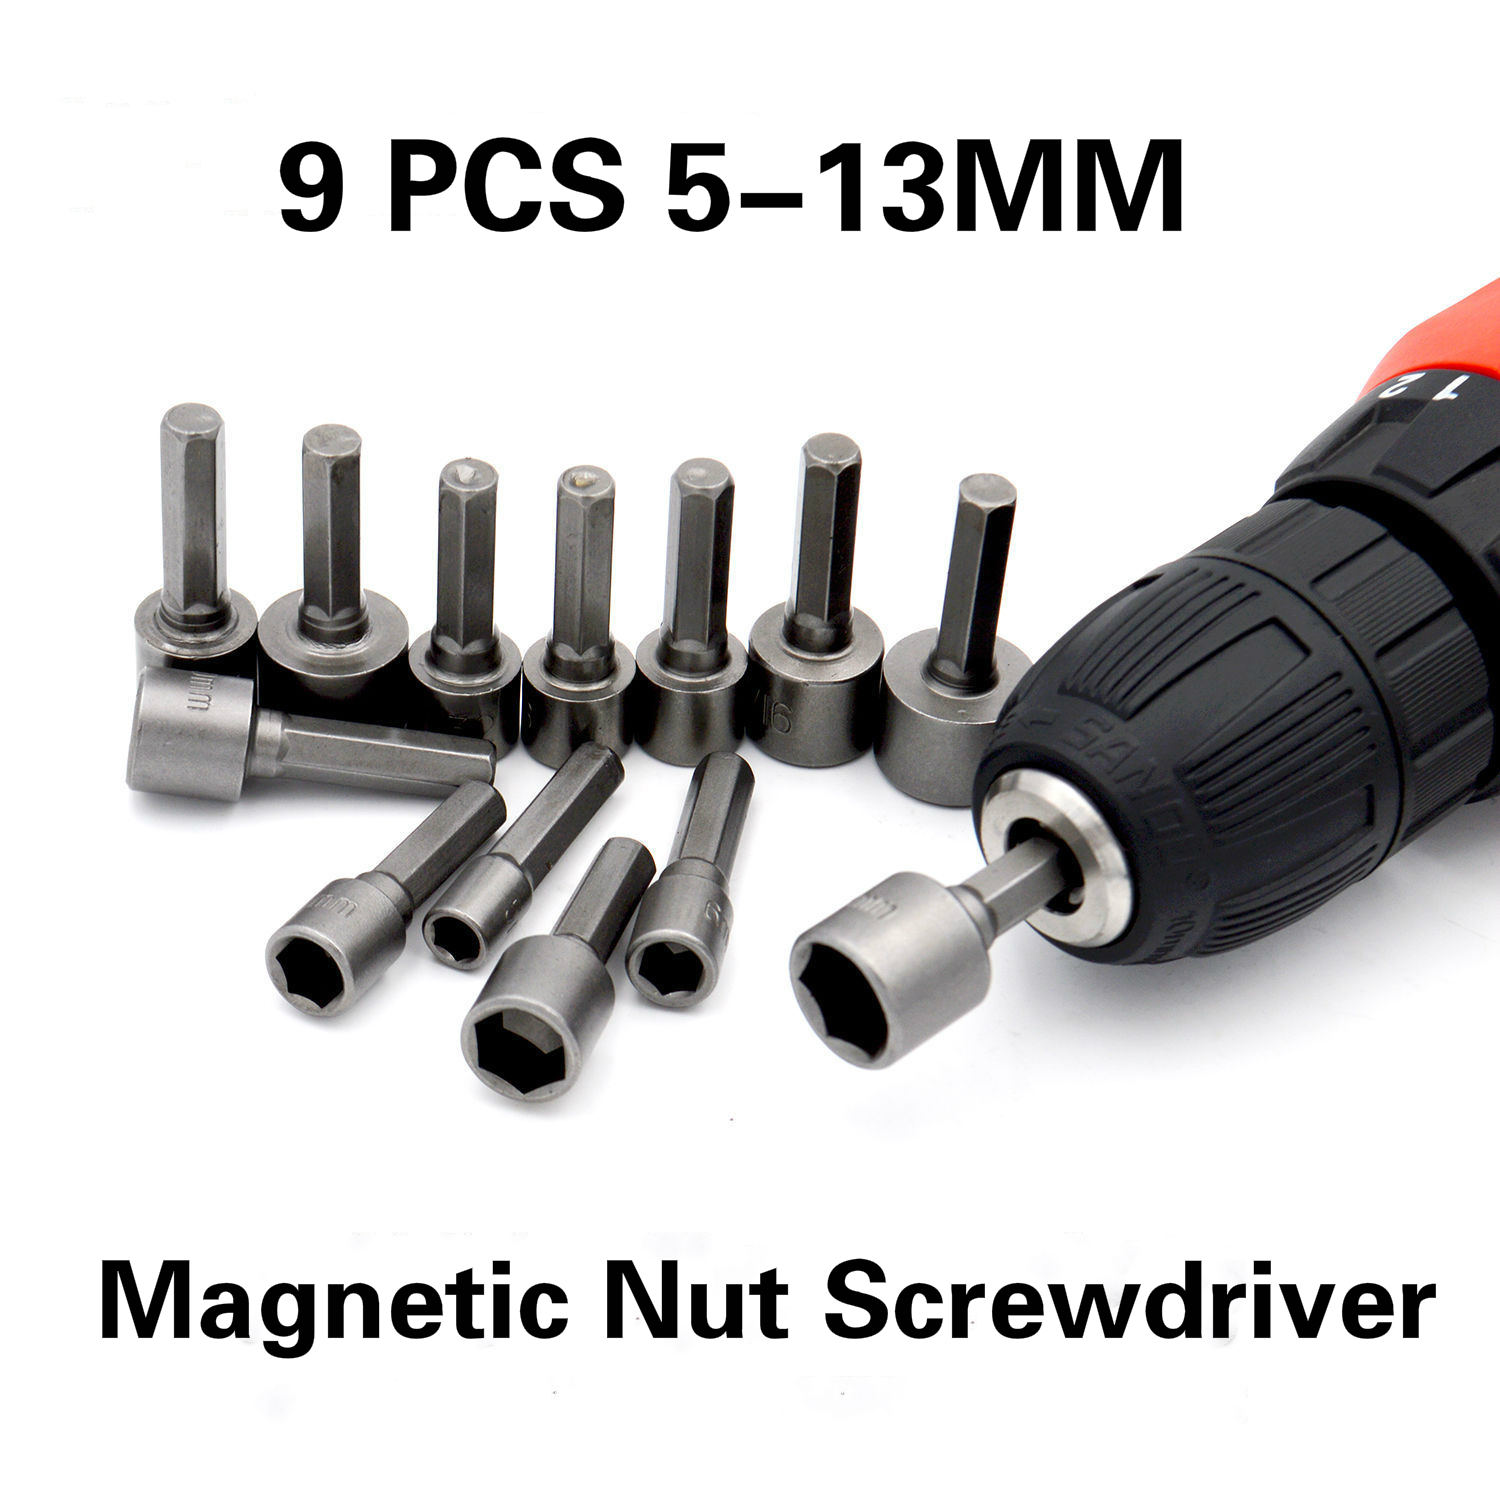 9pcs 5-13mm Hexagon Nut Driver Drill Bit Socket Screwdriver Wrench Set For Electric Screwdriver Handle Tools No Magnetic